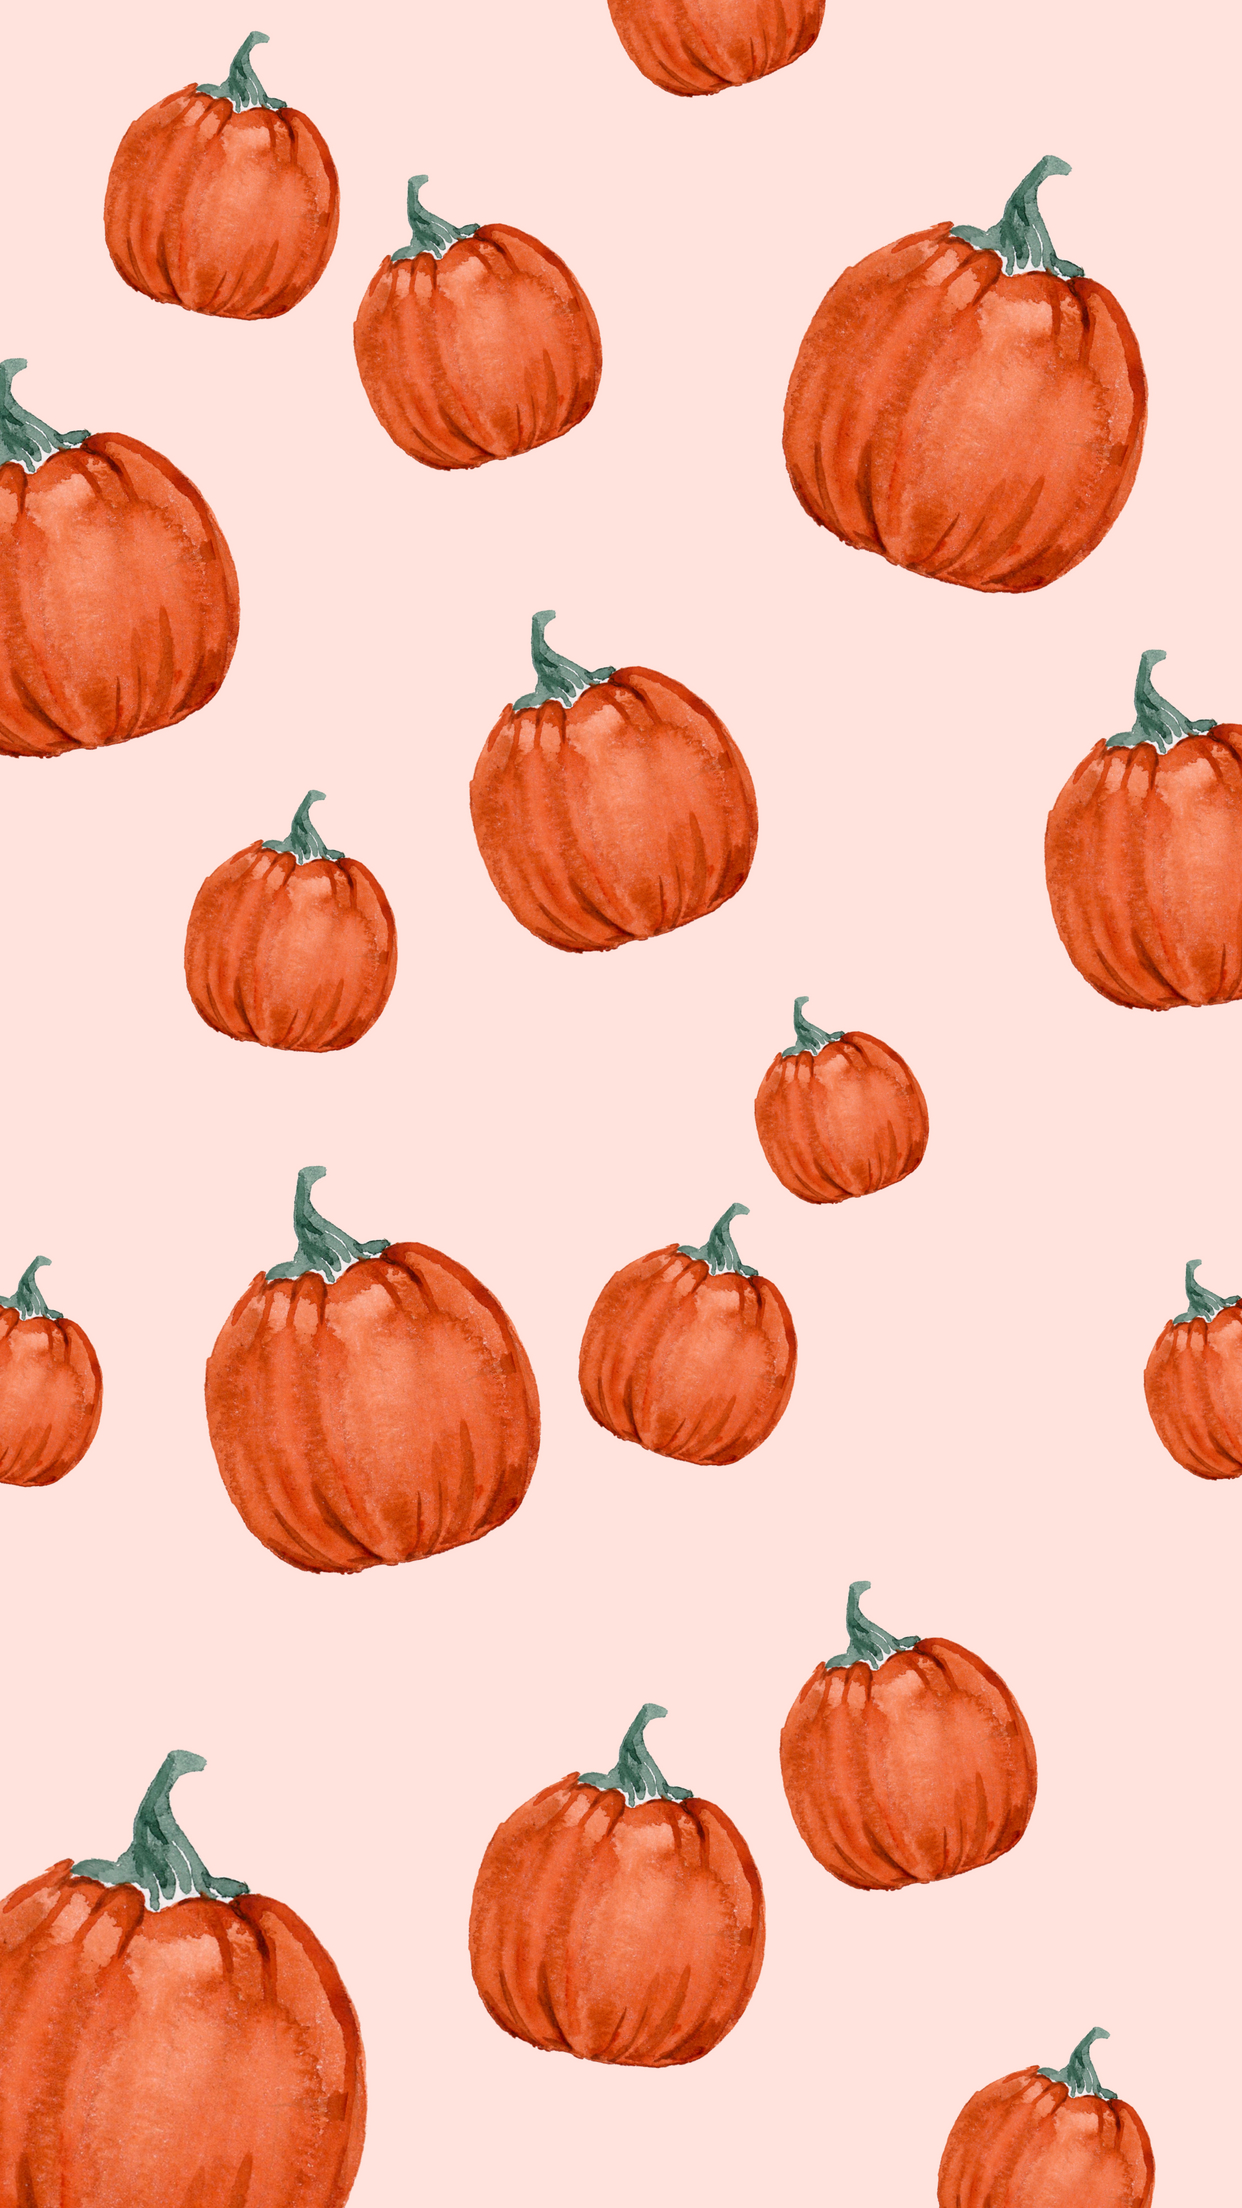 Fall-Cell-Phone-Wallpaper-Background-Pumpkins.jpg